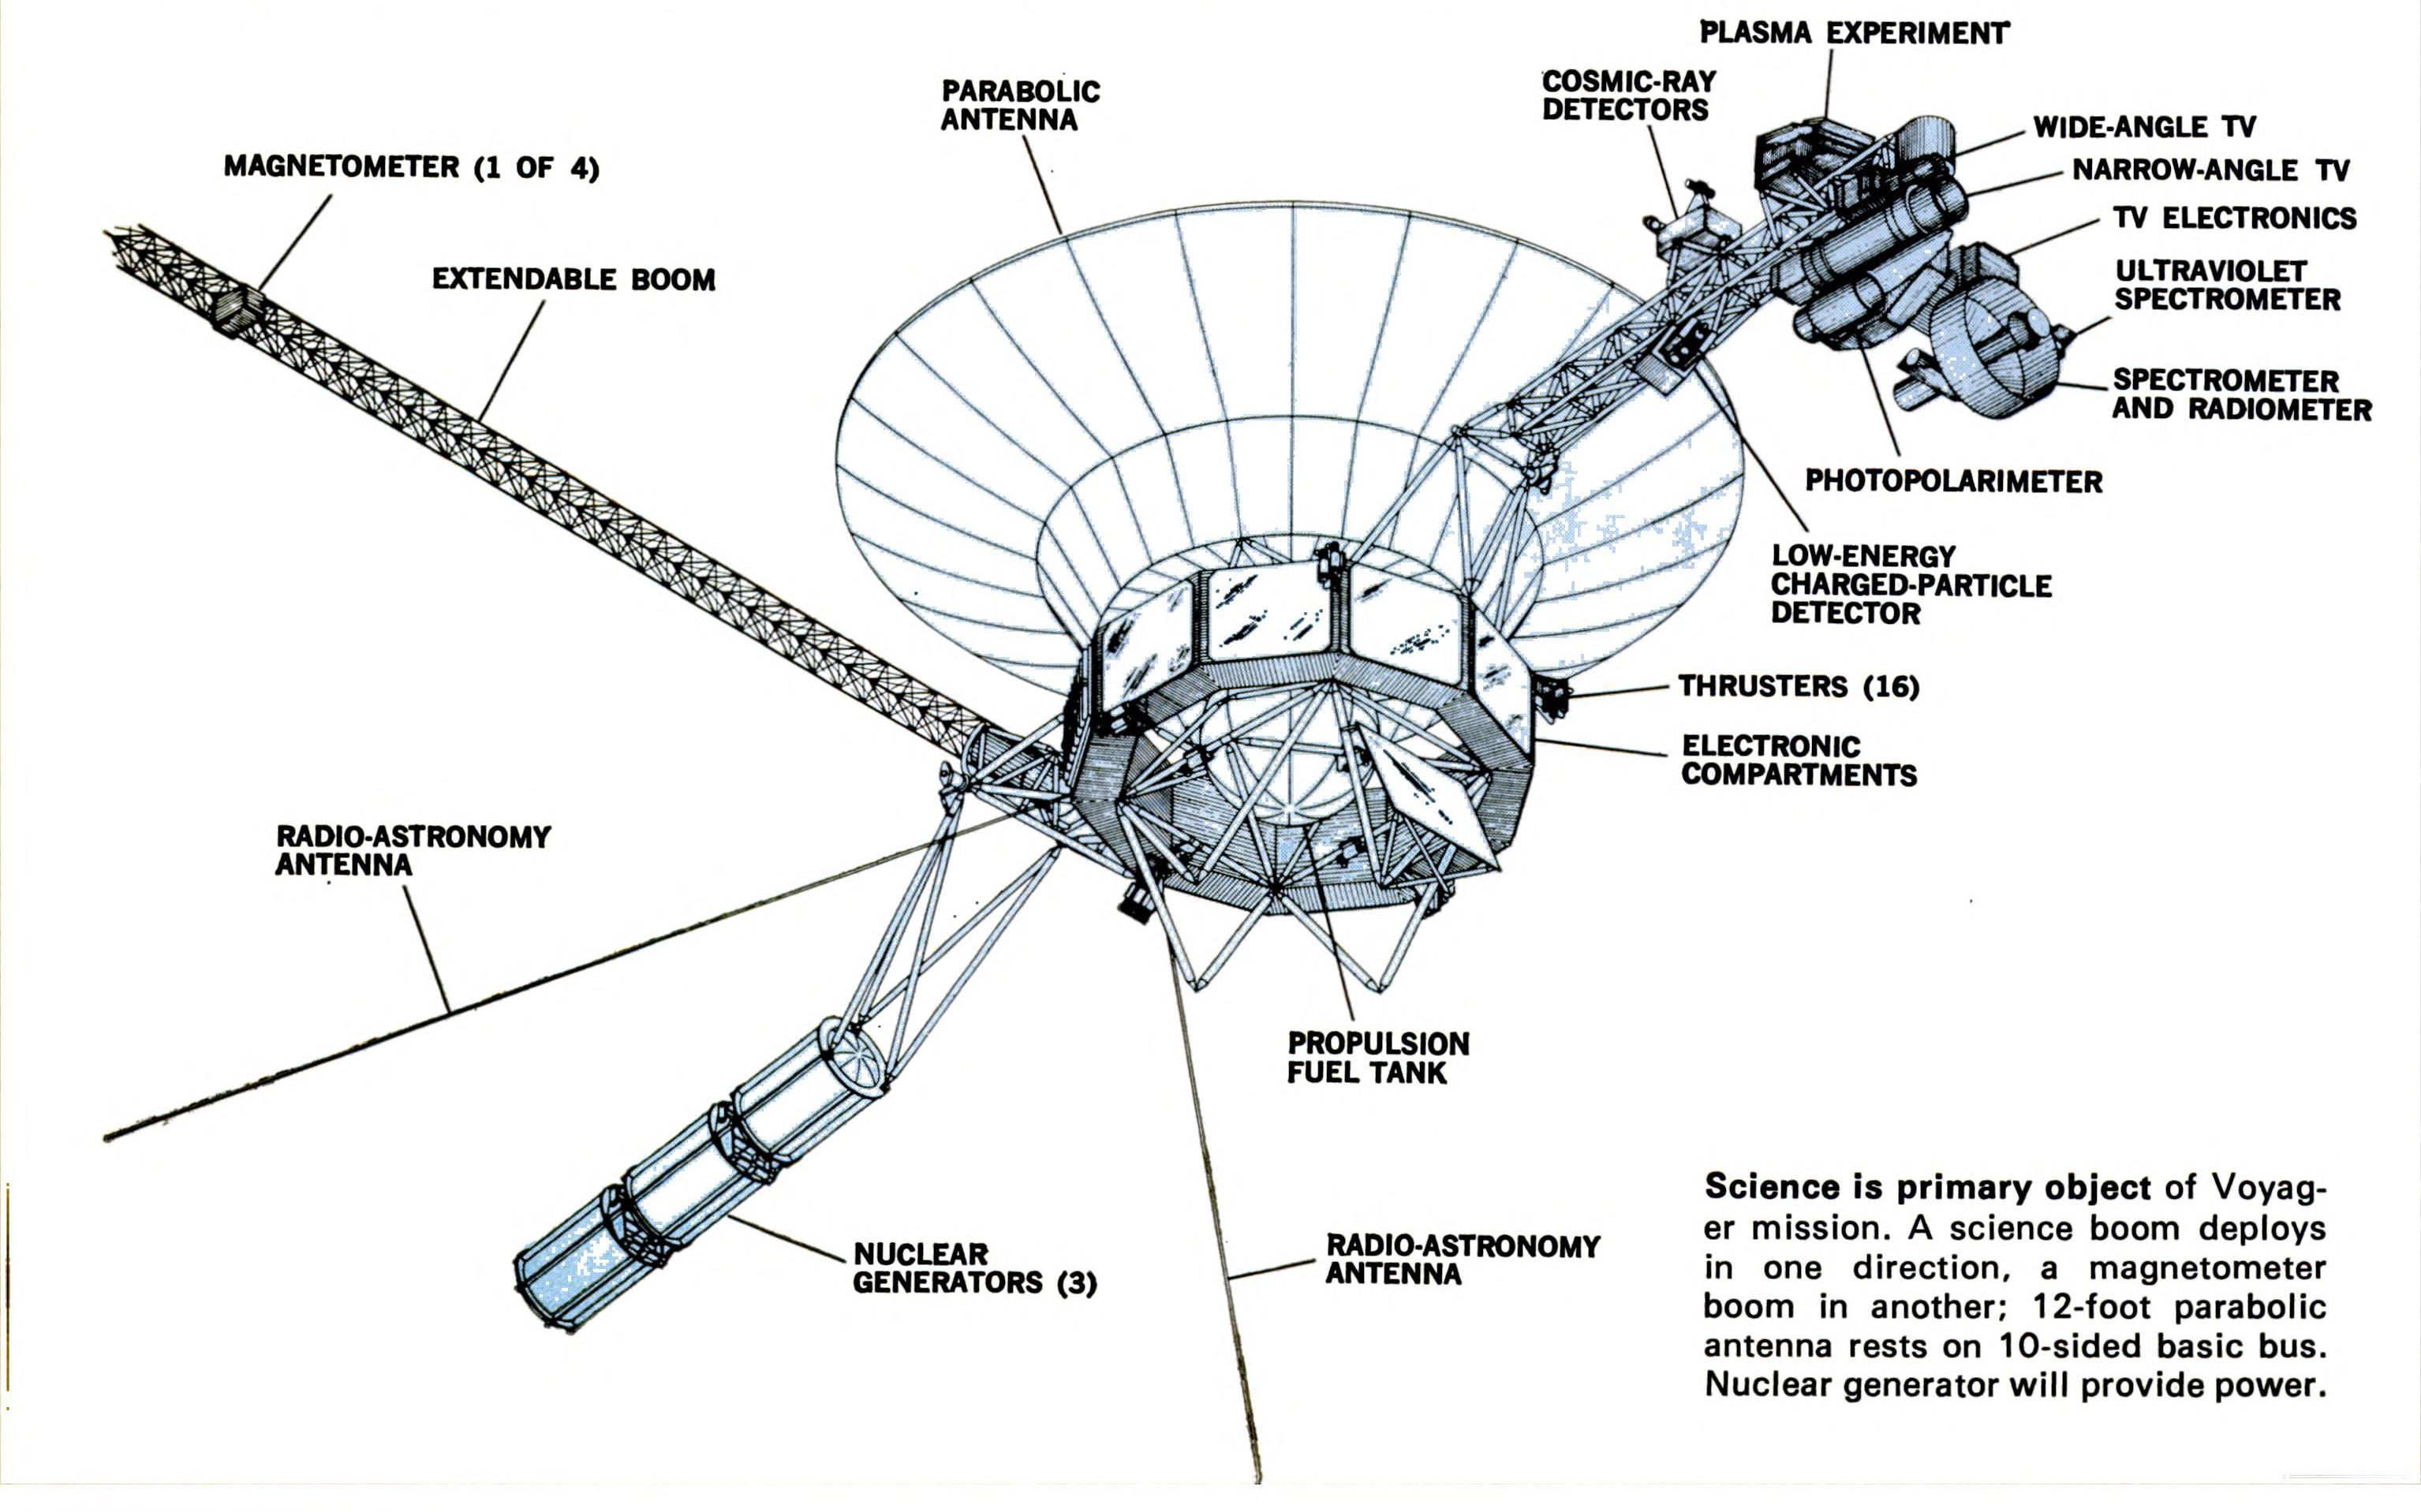 Here's what we had to say about Voyager 1 when it launched